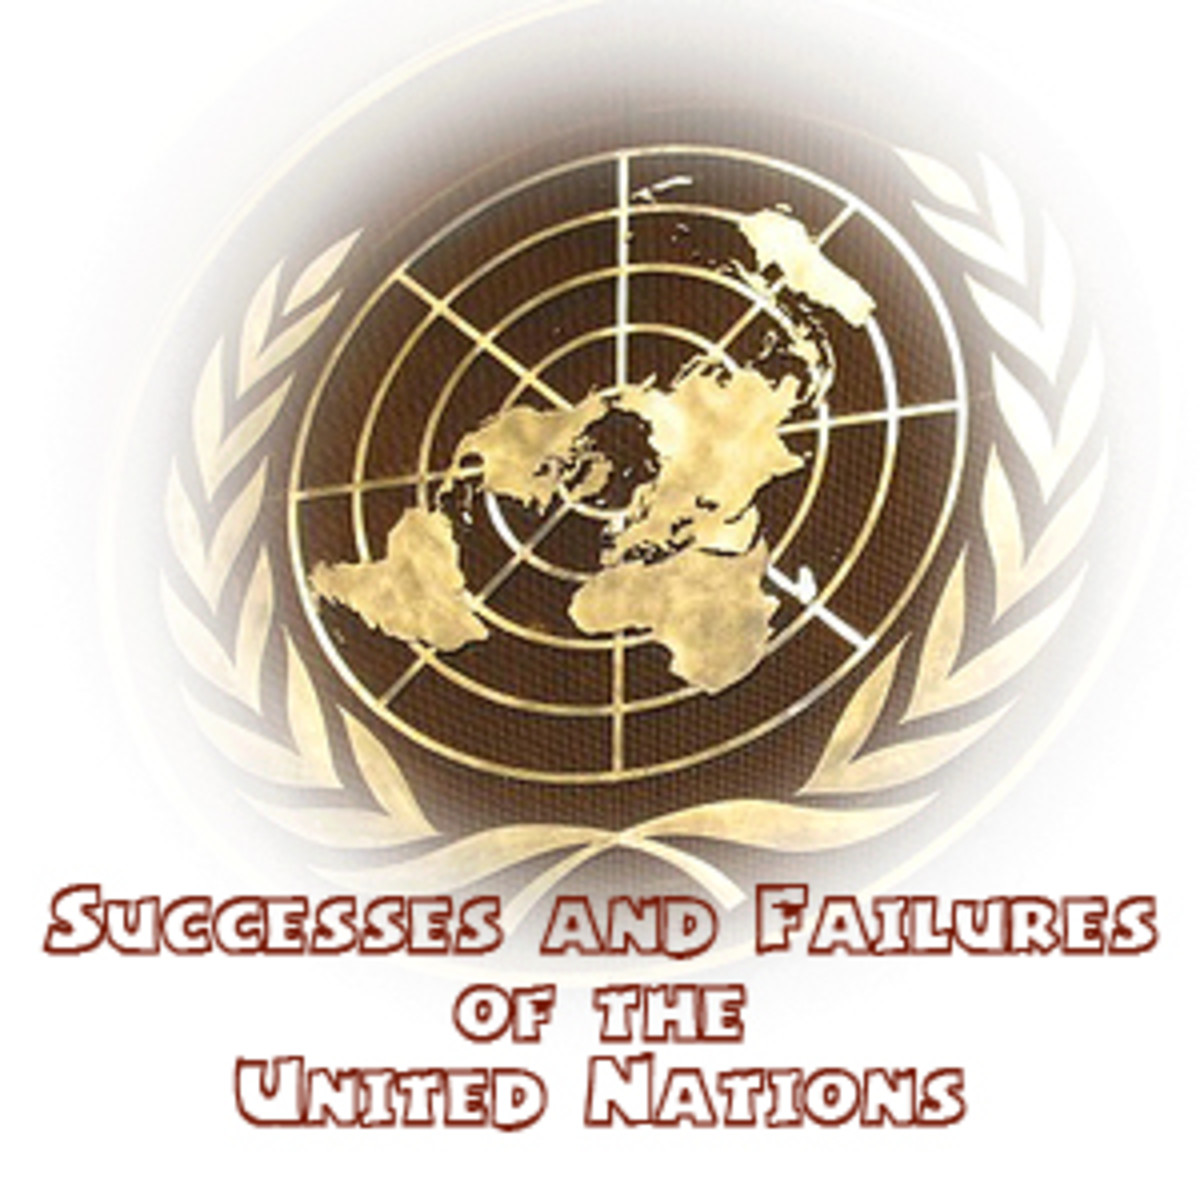 Successes and Failures of the United Nations